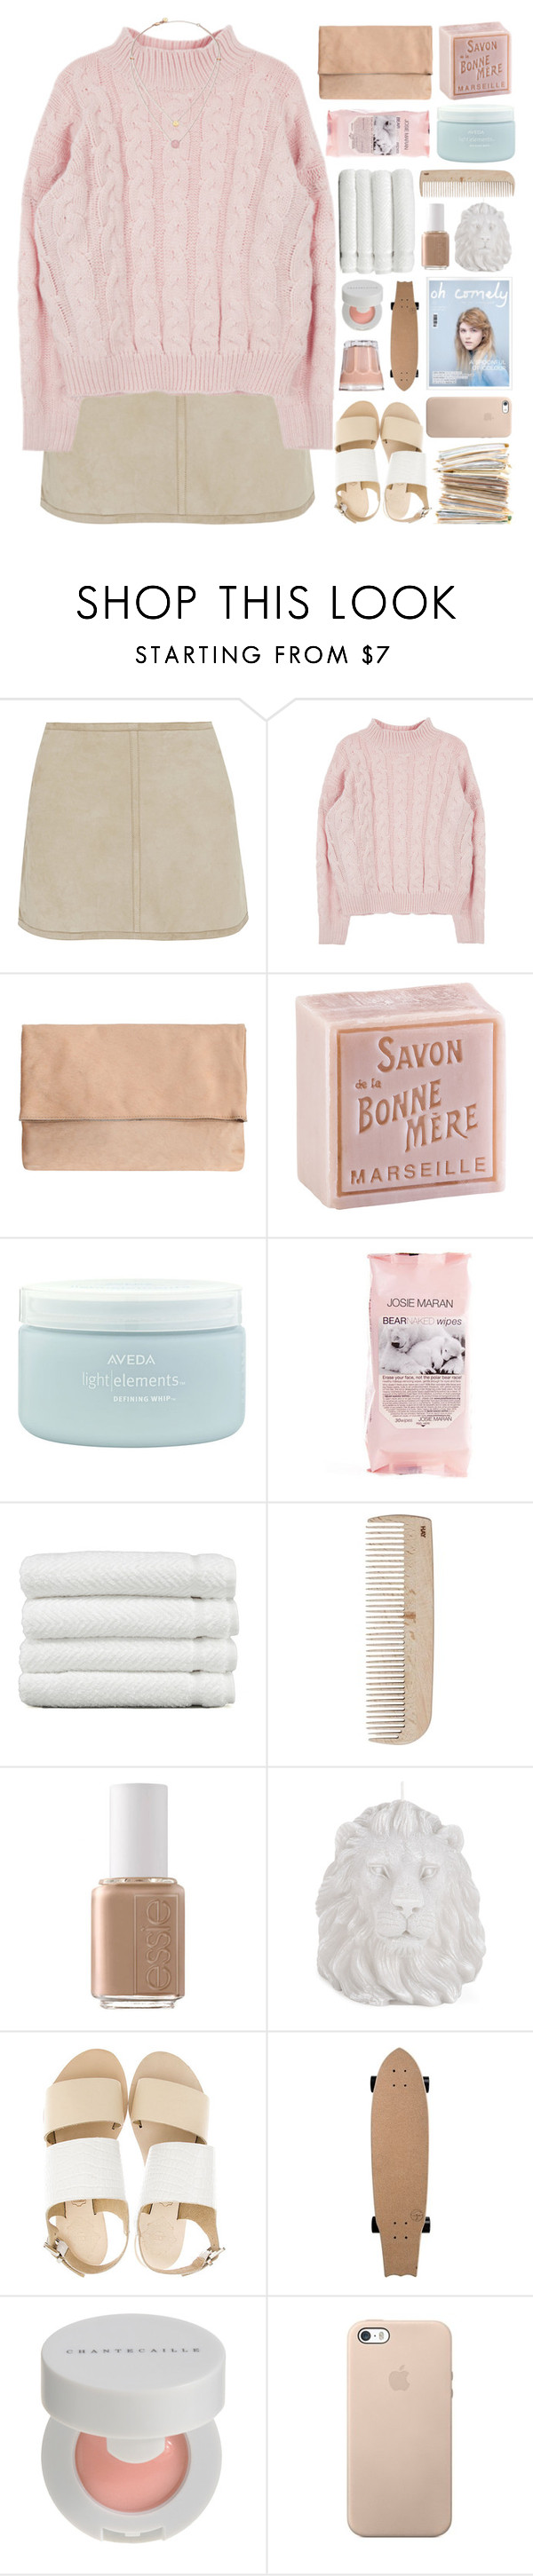 """Orsalia"" by etheras ❤ liked on Polyvore featuring KaufmanFranco, L'Occitane, Aveda, Josie Maran, Linum Home Textiles, HAY, Essie, Zara Home, Sol Sana and Chantecaille"